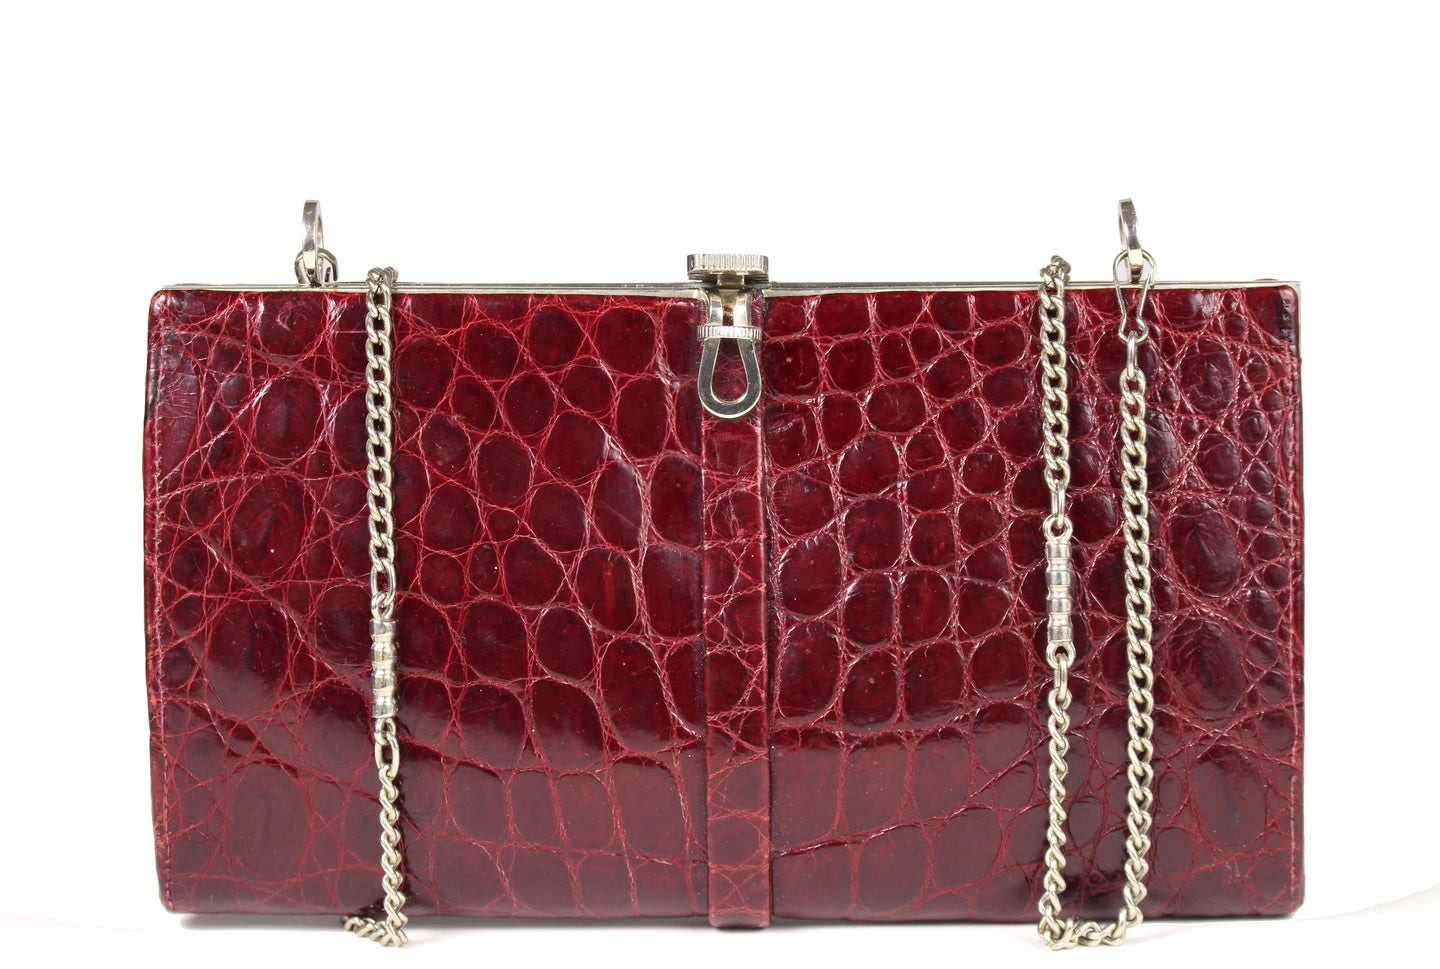 WIEN ruby red crocodile skin clutch